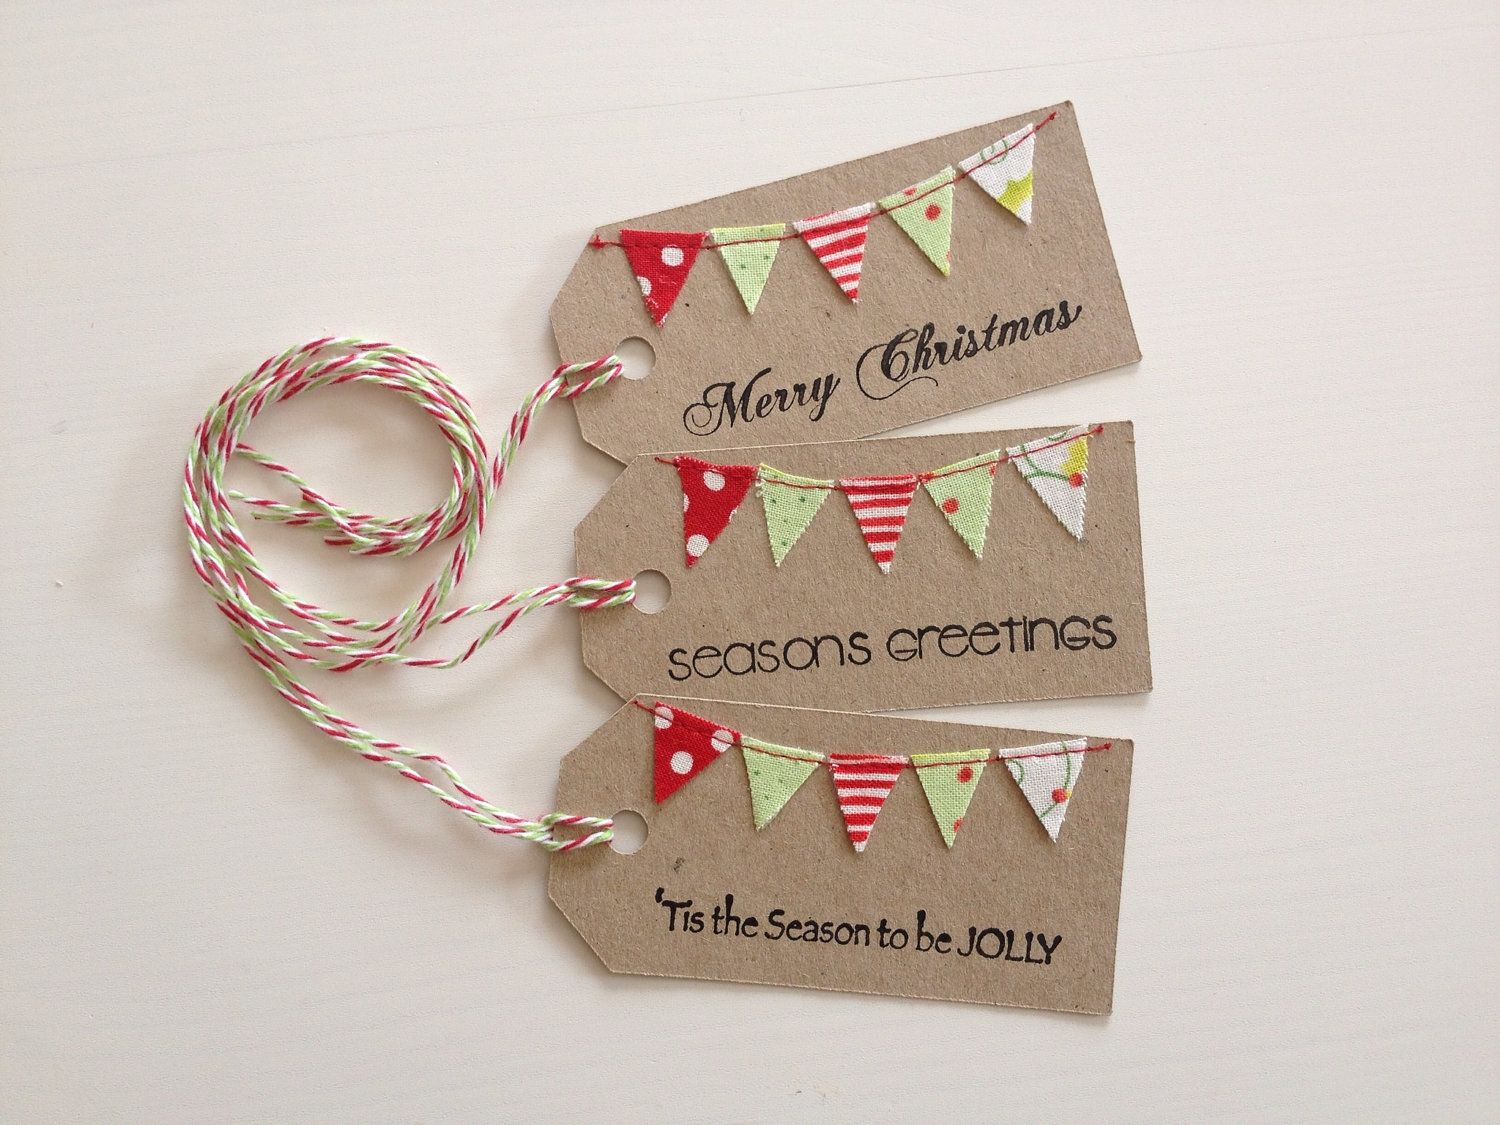 Homemade gift tag ideas images Homemade christmas gifts